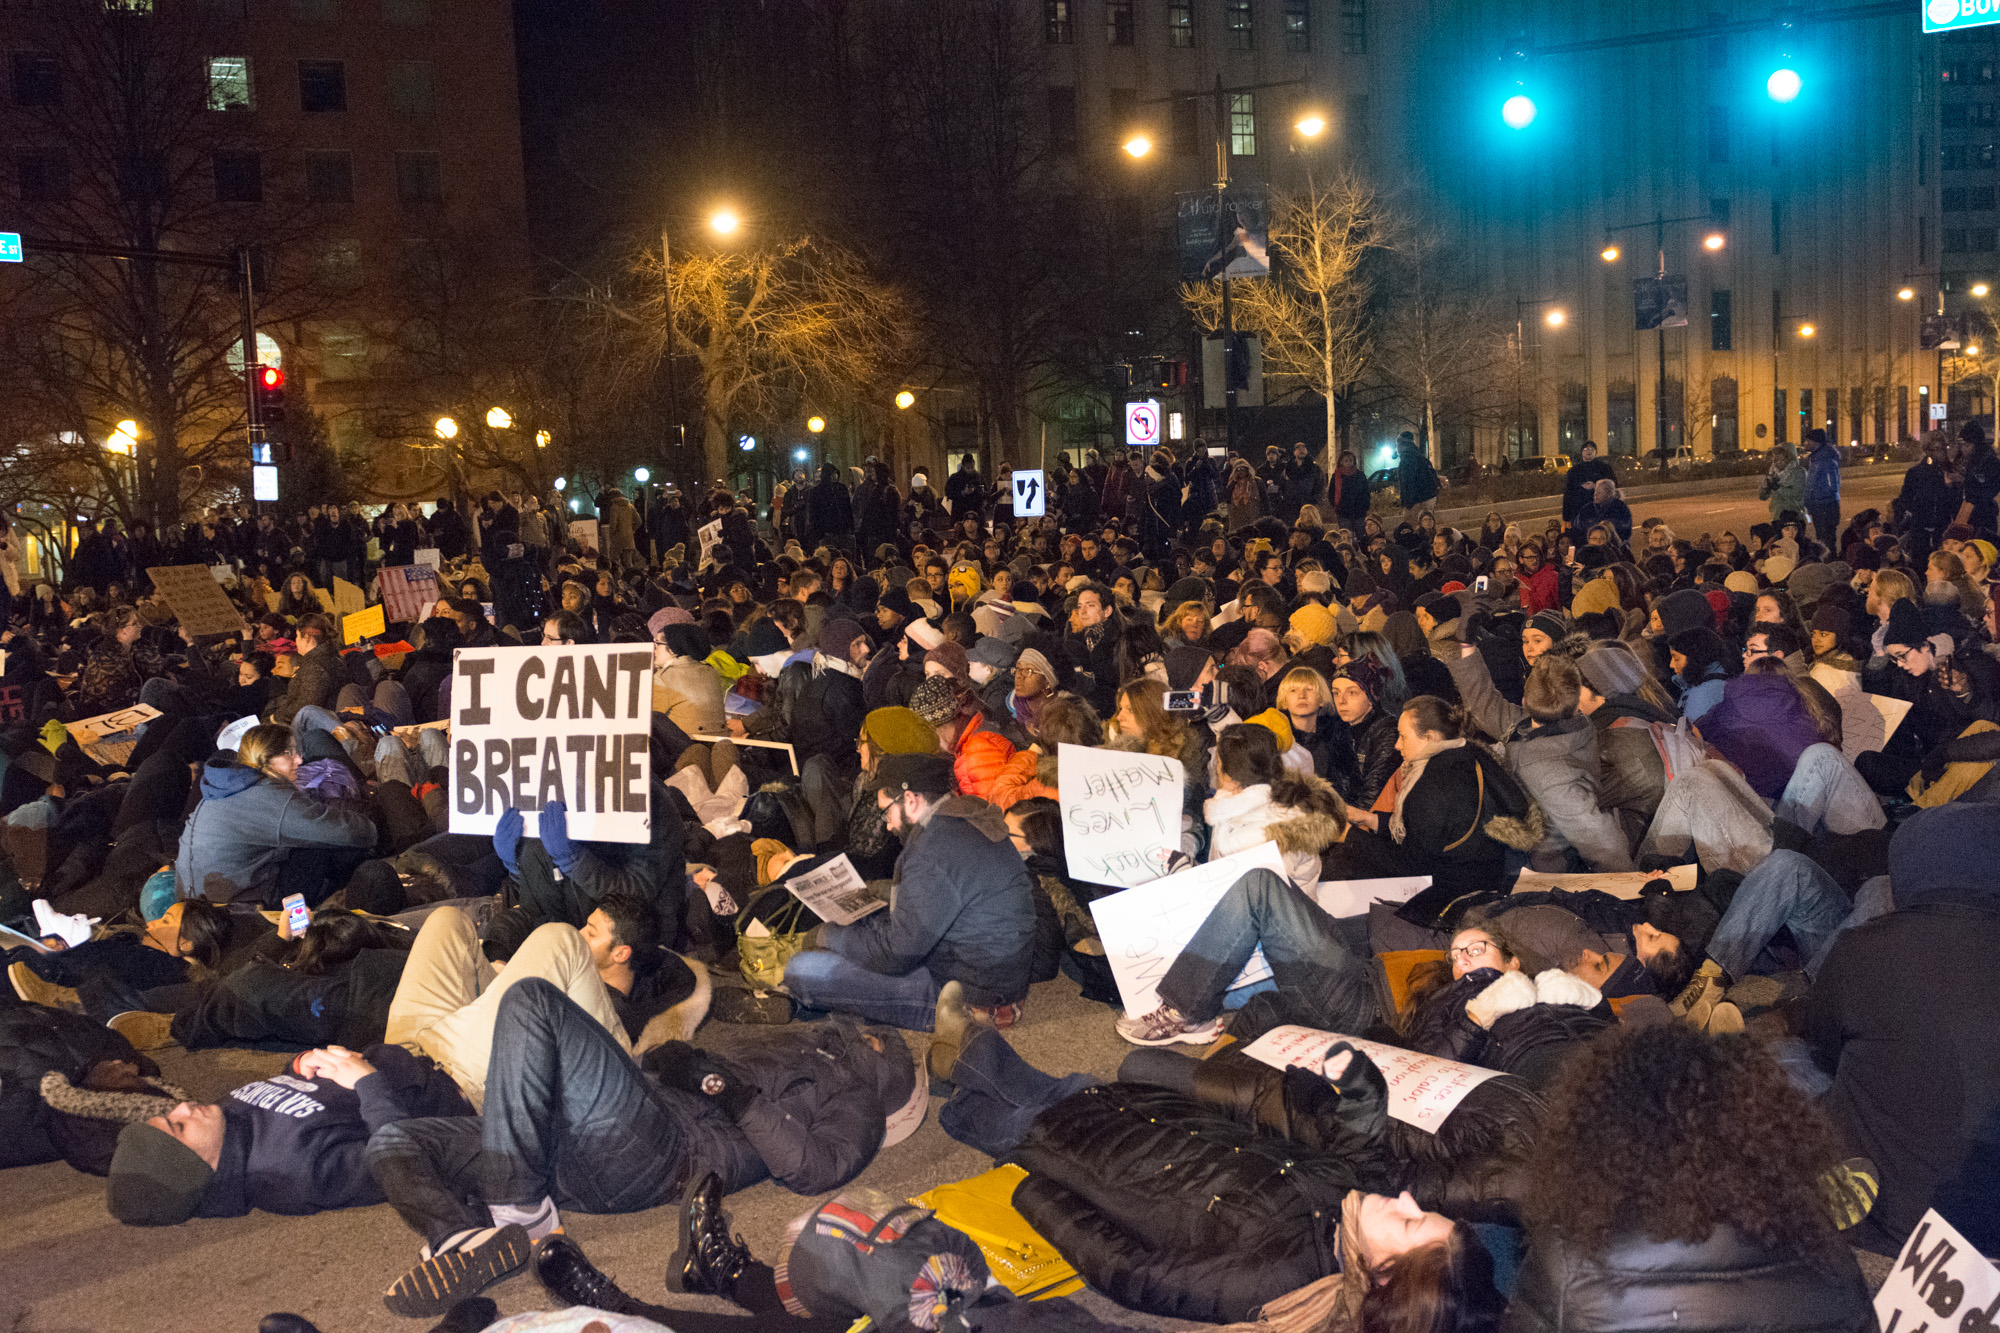 """The """"die-in"""" was supposed to last eleven minutes, one minute for each time Eric Garner cried out """"I can't breathe"""" before dying while to NYPD continued to choke him. An ambulance had to get through and within a few seconds the protesters cleared the streets and continued to march."""